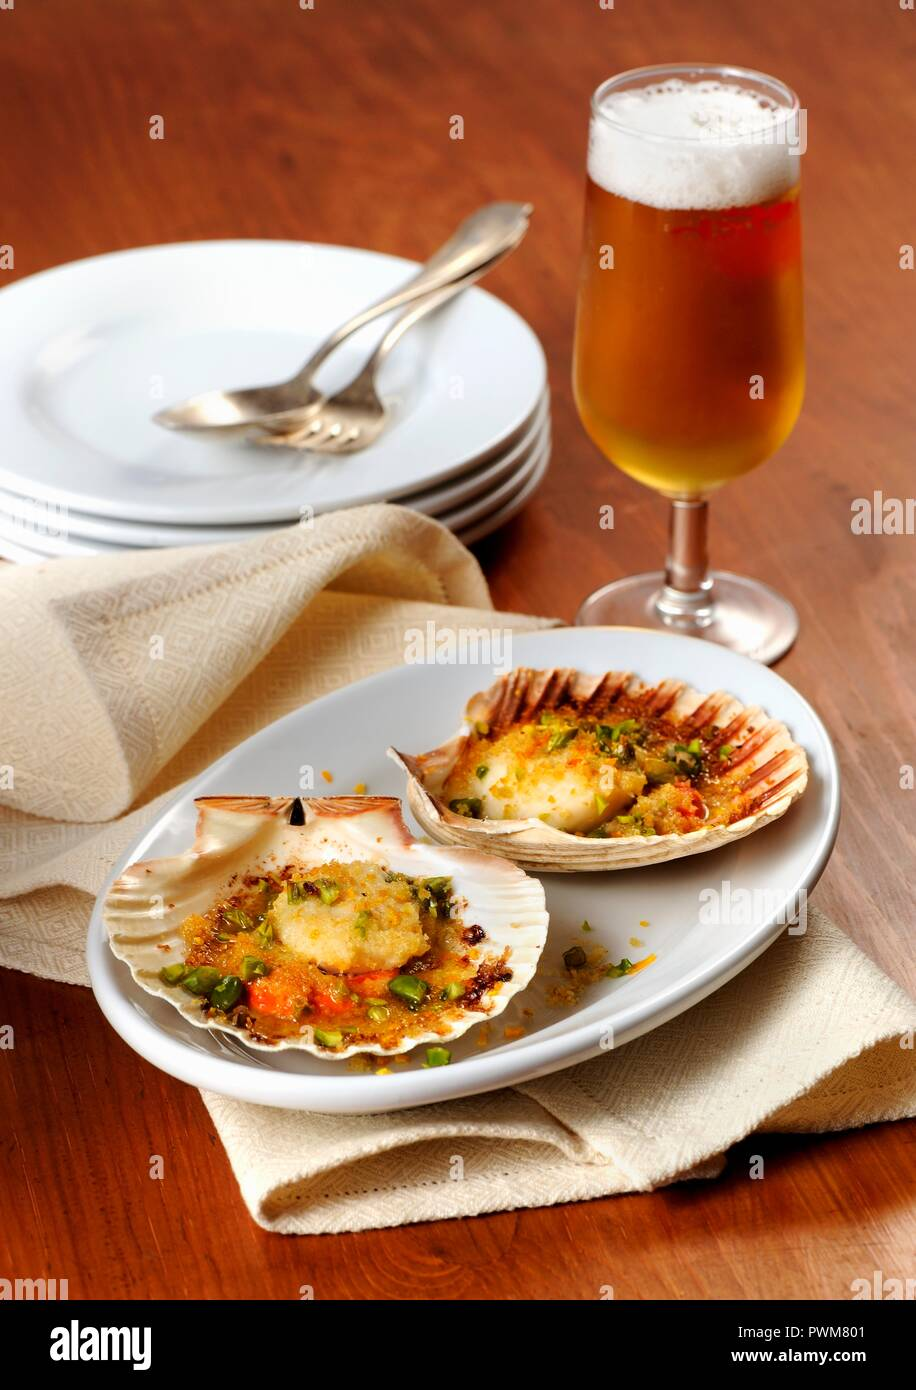 Gratinated scallops and beer - Stock Image